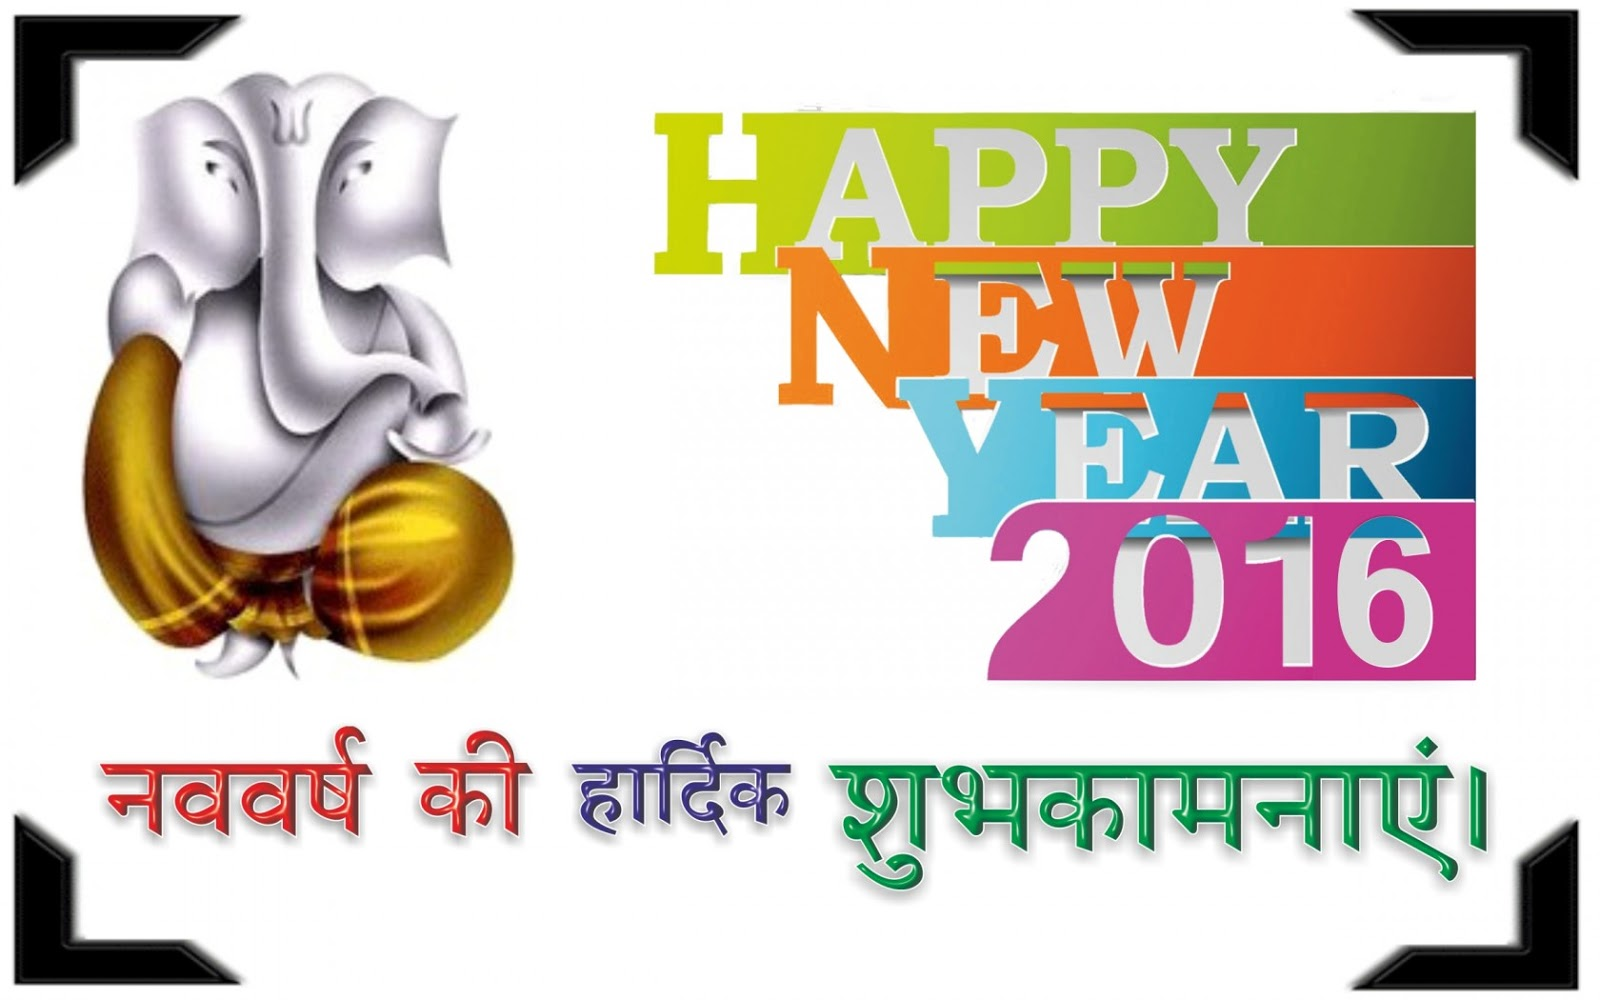 Chodavaramnet Advanced Happy New Year 2016 Best Wishes And Greetings